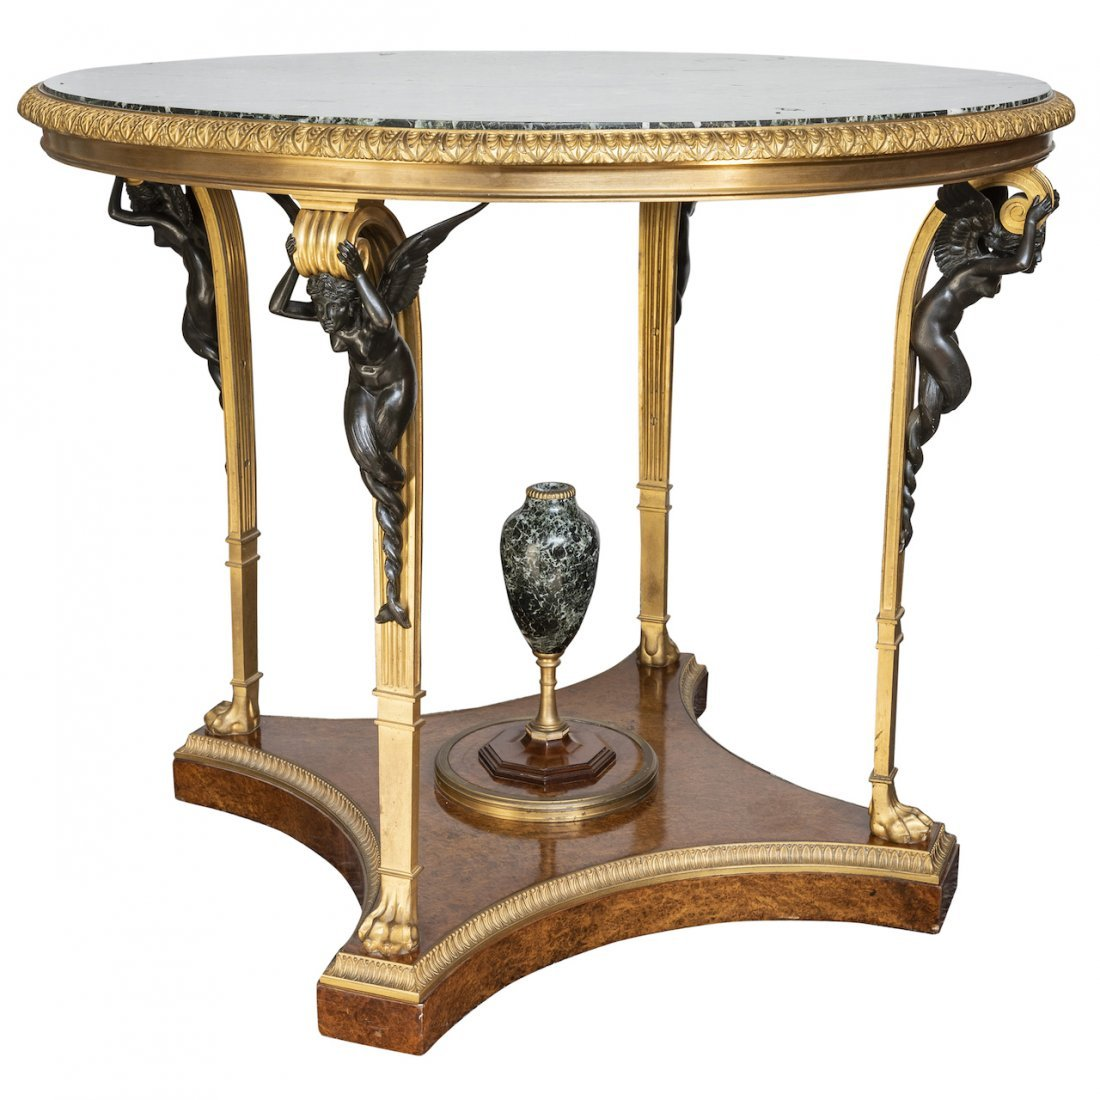 Very Fine French Center Table, XIX'th Century